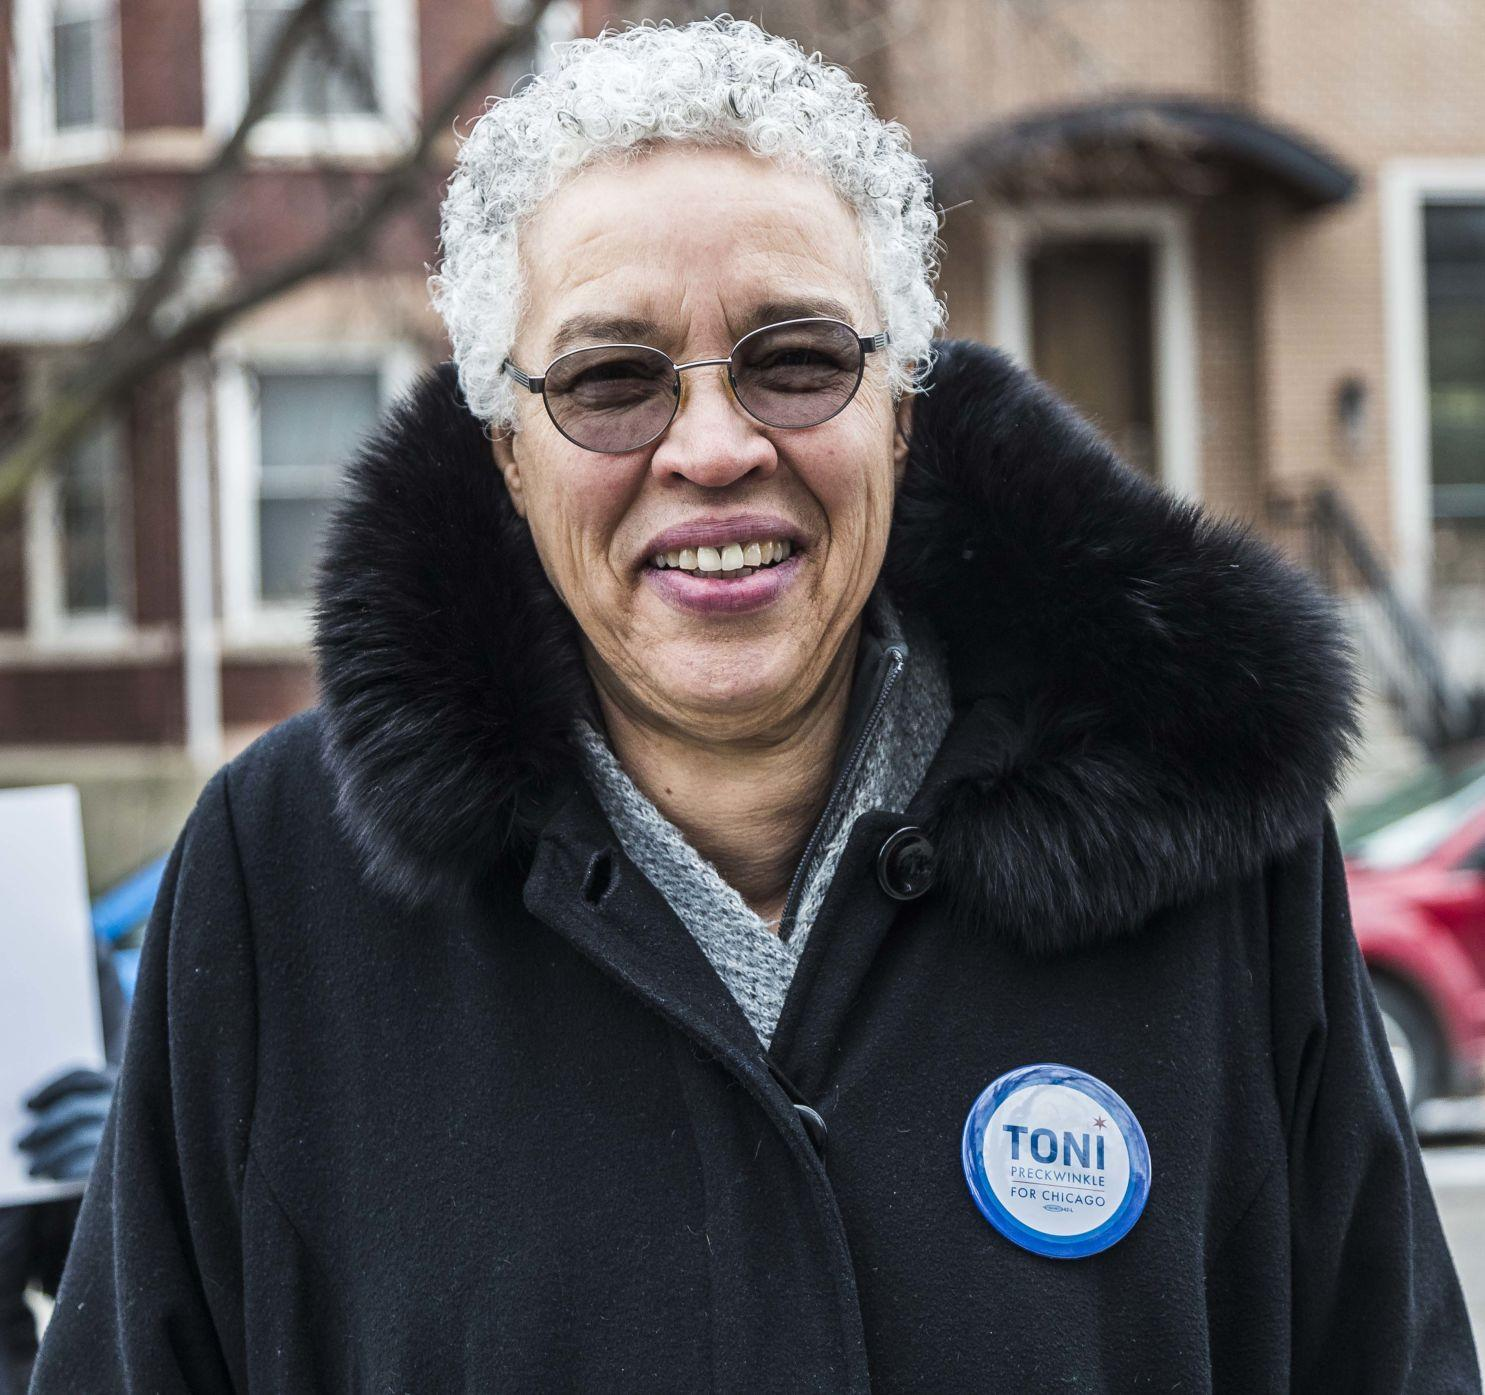 Mayoral+candidate+Toni+Preckwinkle+campaigning+before+the+election.+Preckwinkle+won+enough+votes+Tuesday+to+move+on+to+a+runoff+in+April.